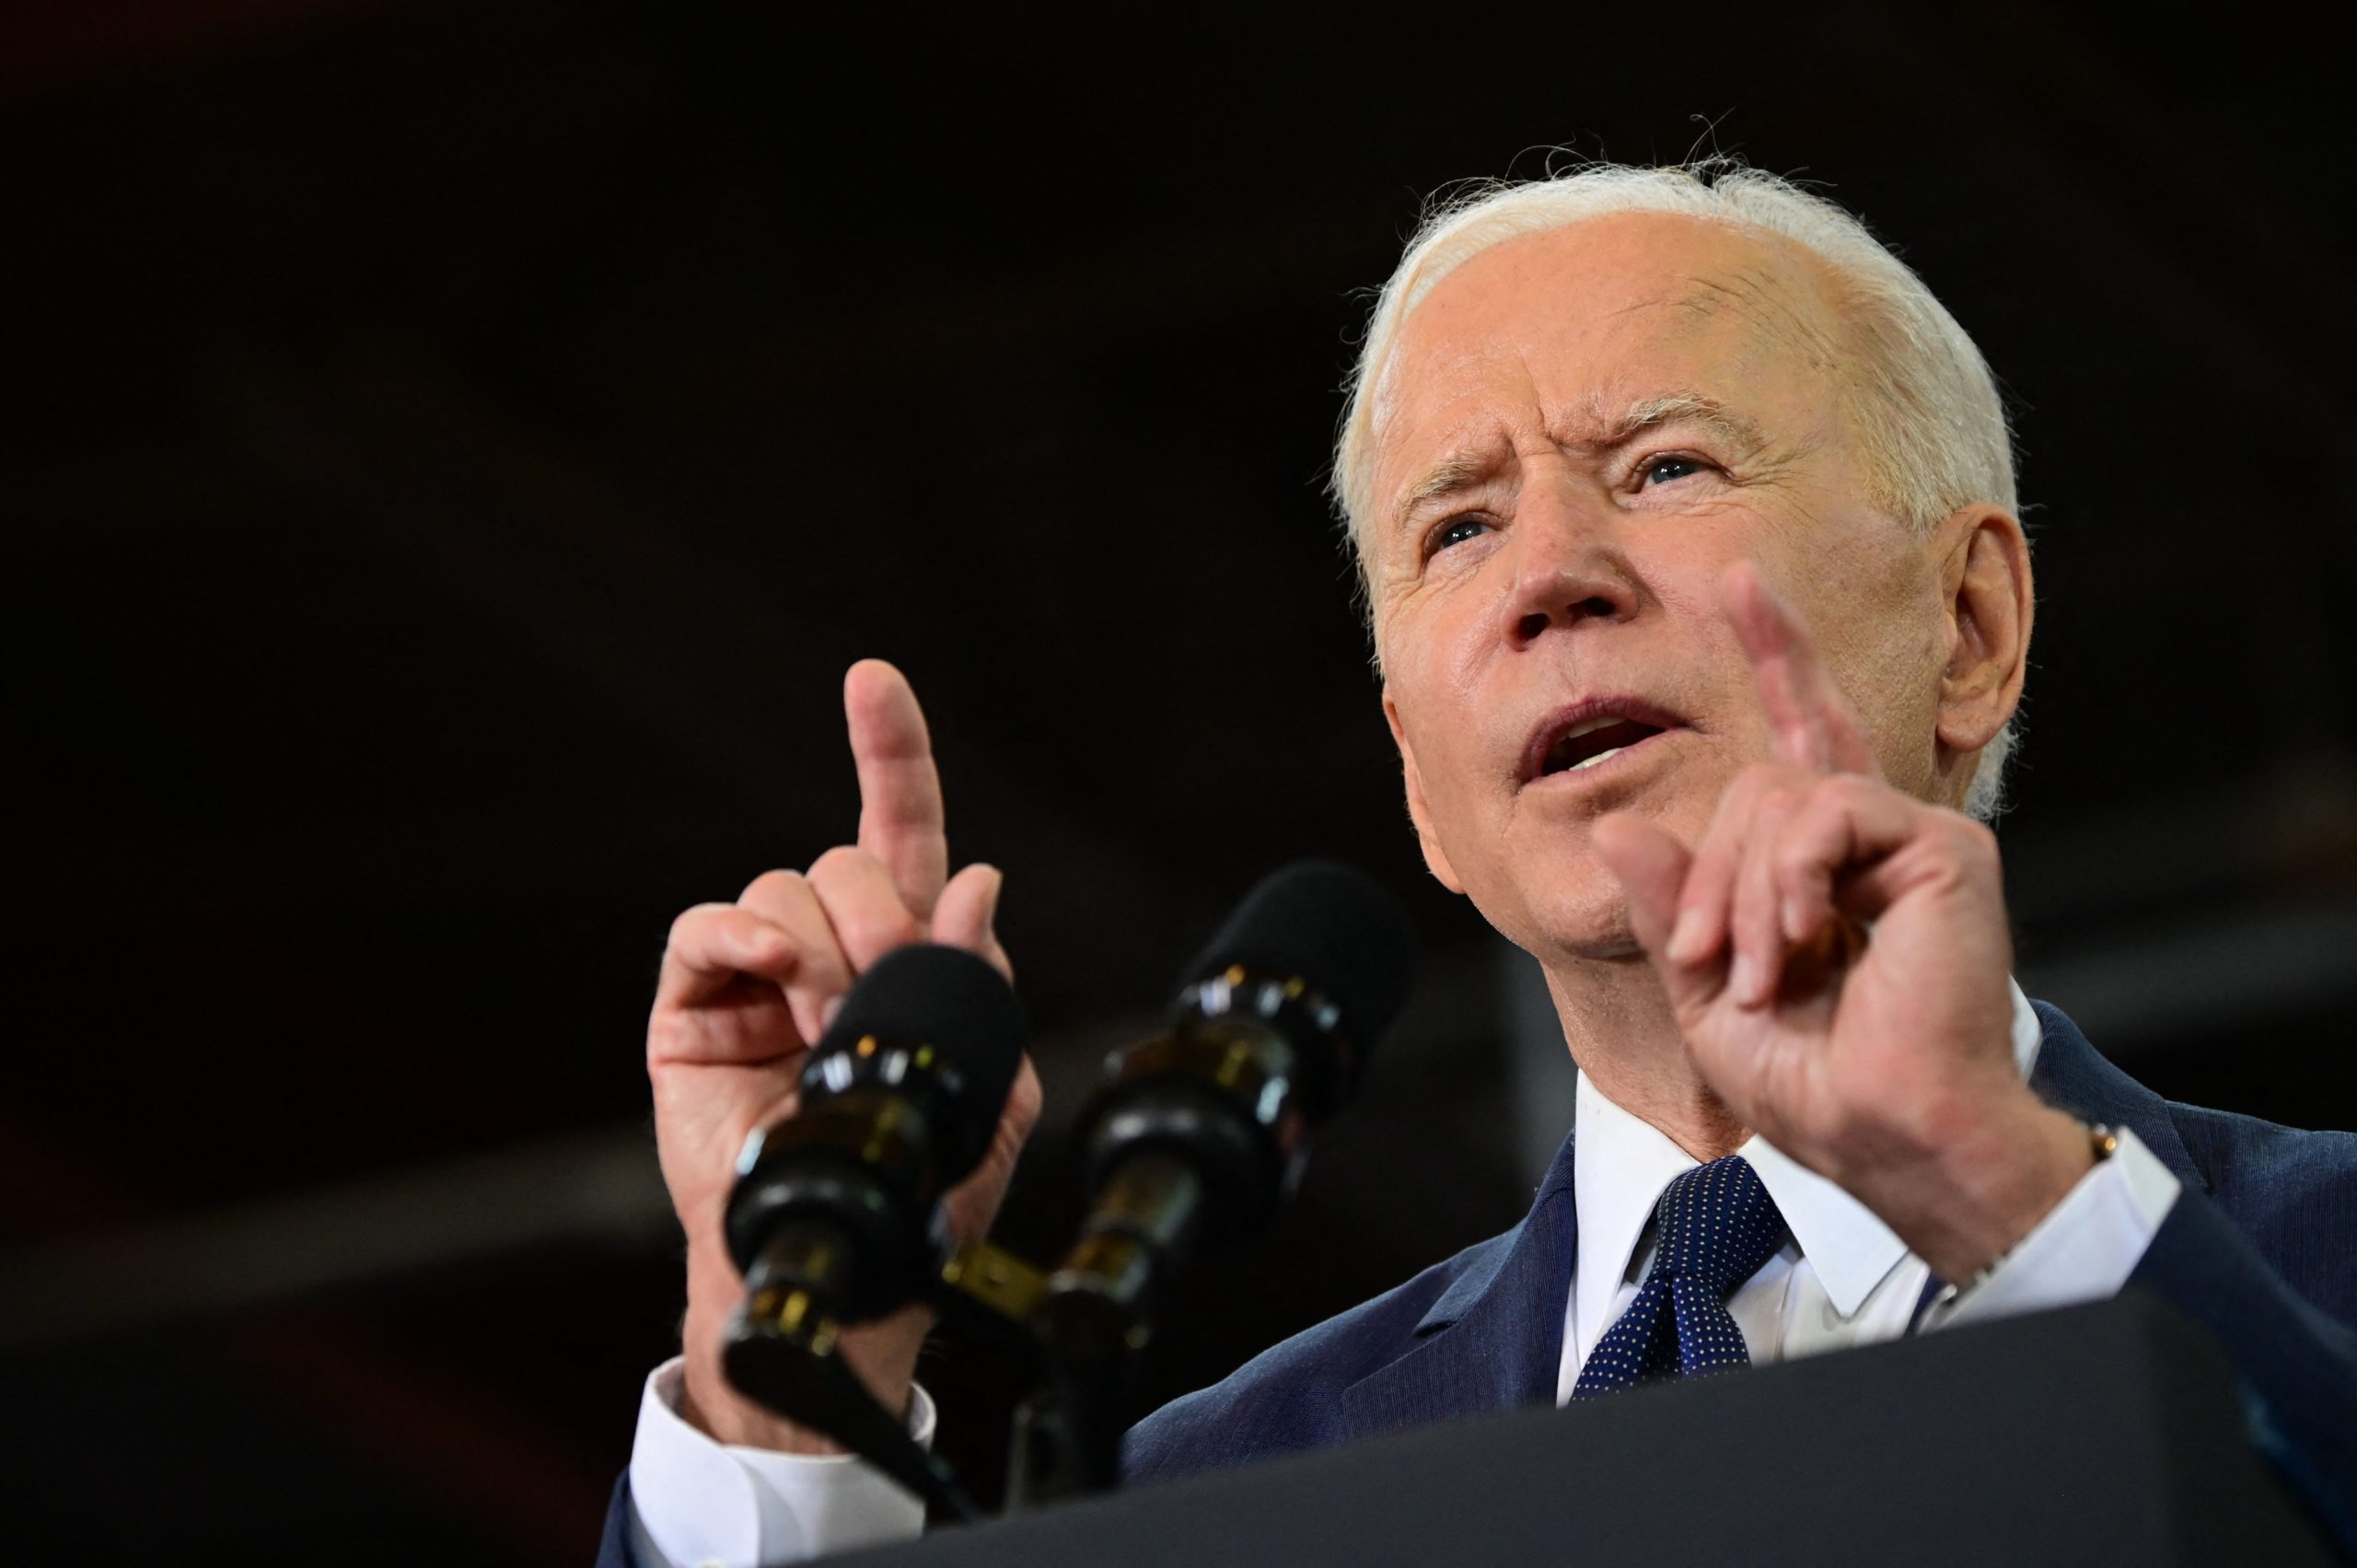 President Joe Biden announces his infrastructure plan, which involves raising the corporate tax rate to 28%, on Wednesday in Pittsburgh, Pennsylvania. (Jim Watson/AFP via Getty Images)